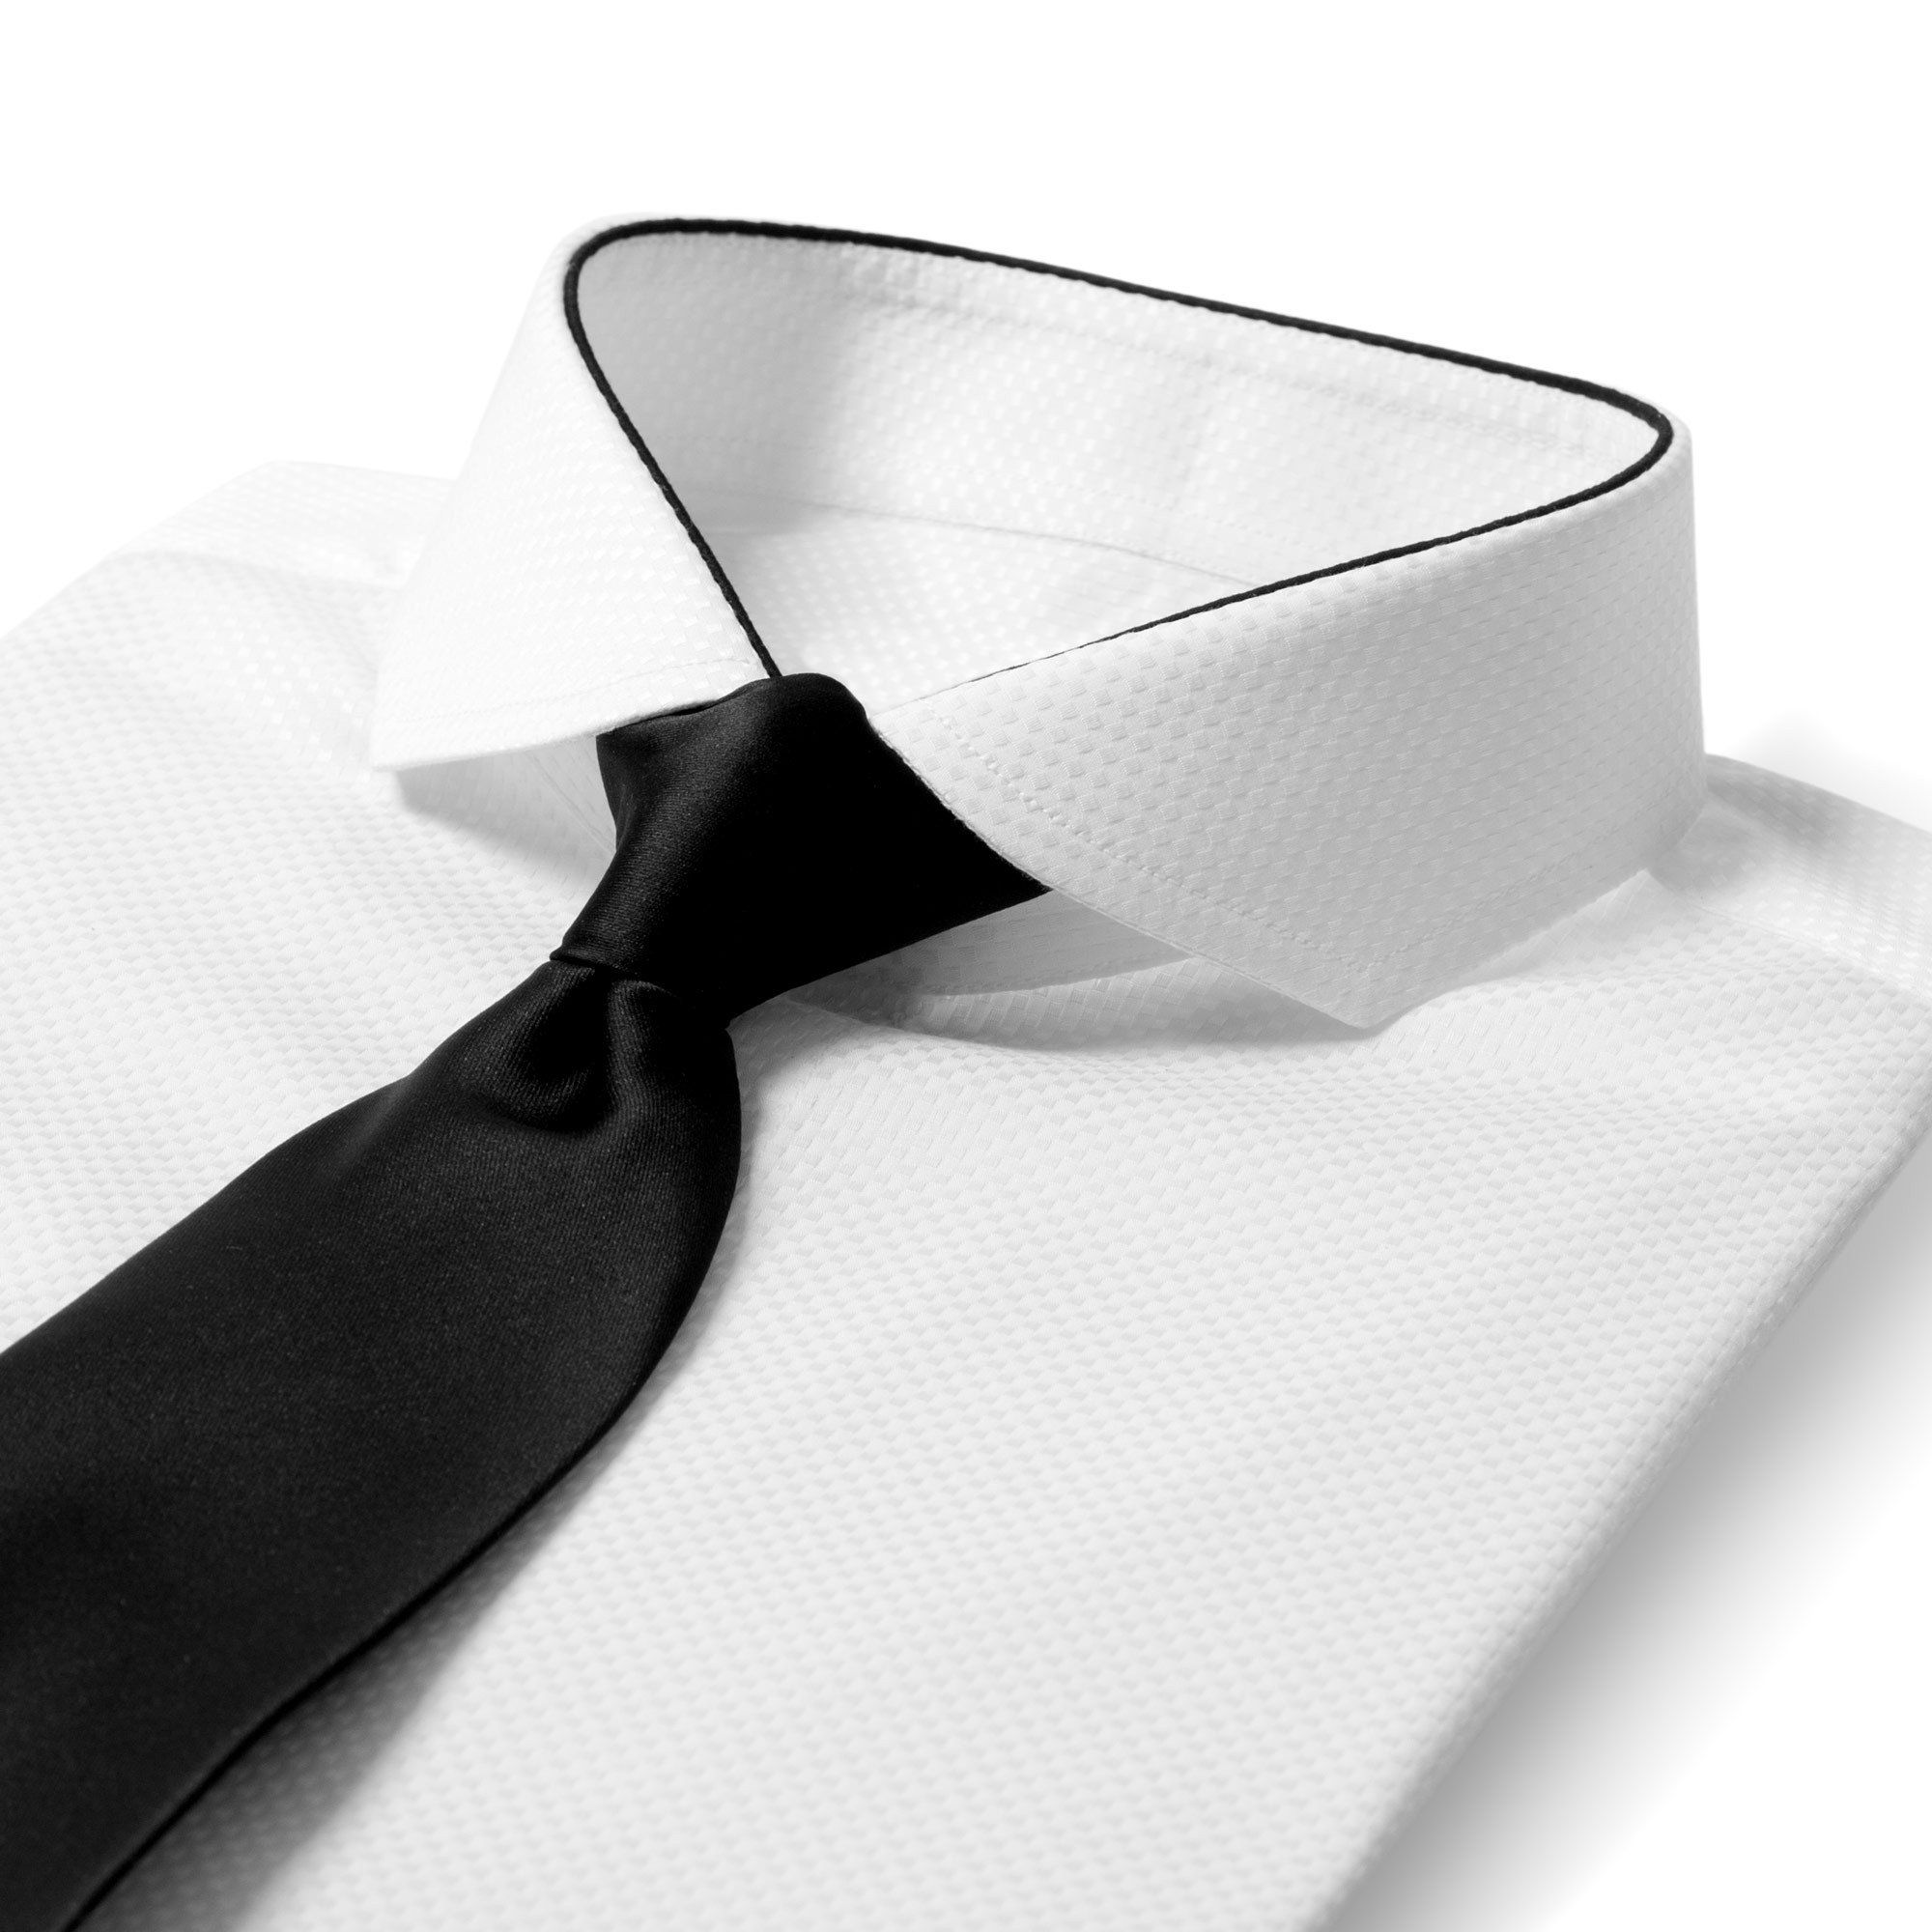 bb729dcd4eef7c Edge Modern White Dress Shirt with Black Tie | menswear | Shirts ...